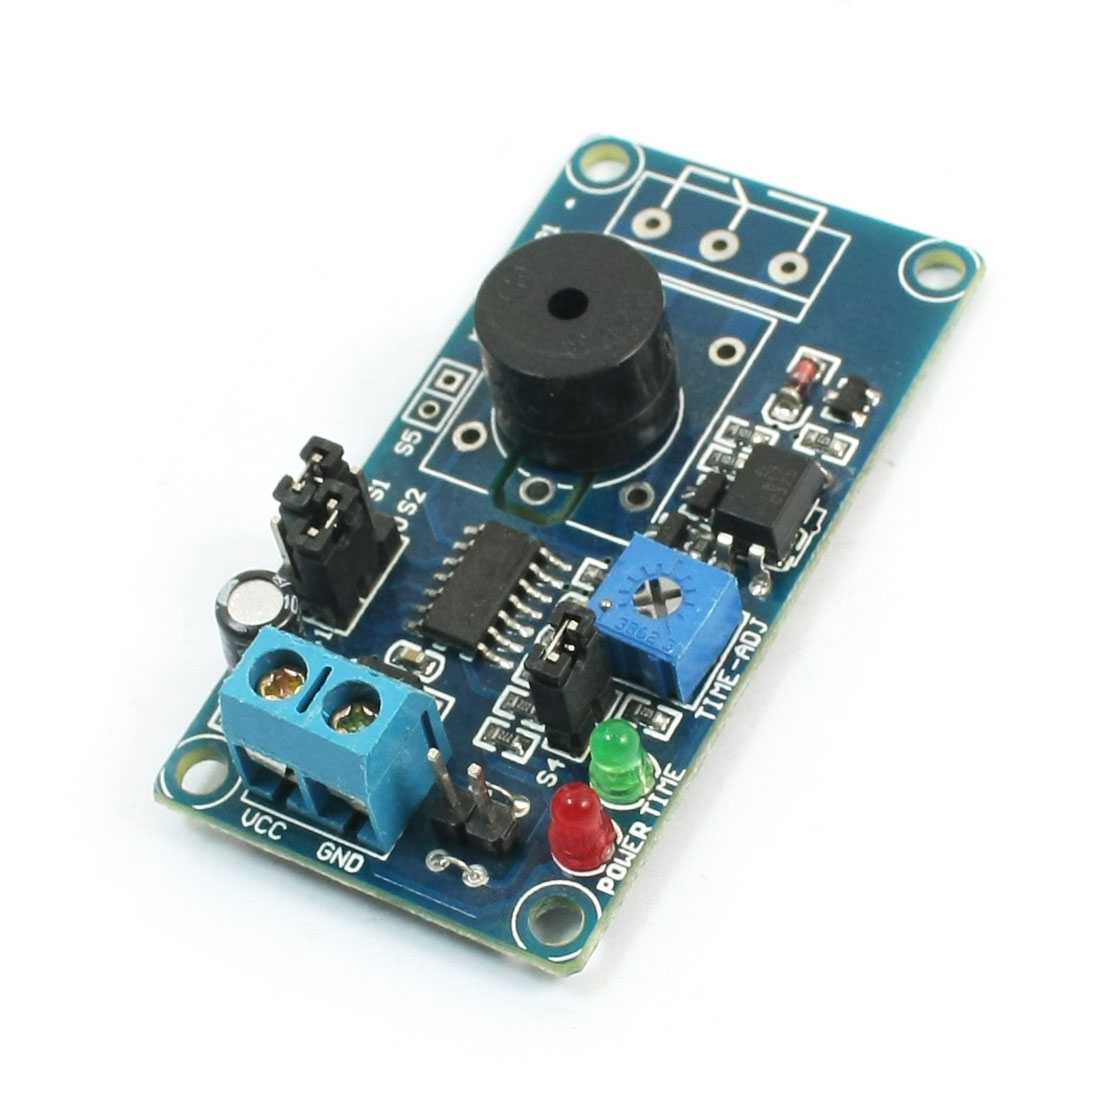 DIY 5V 1-190Sec Adjustable Time Delay Alarm Device Buzzer Module